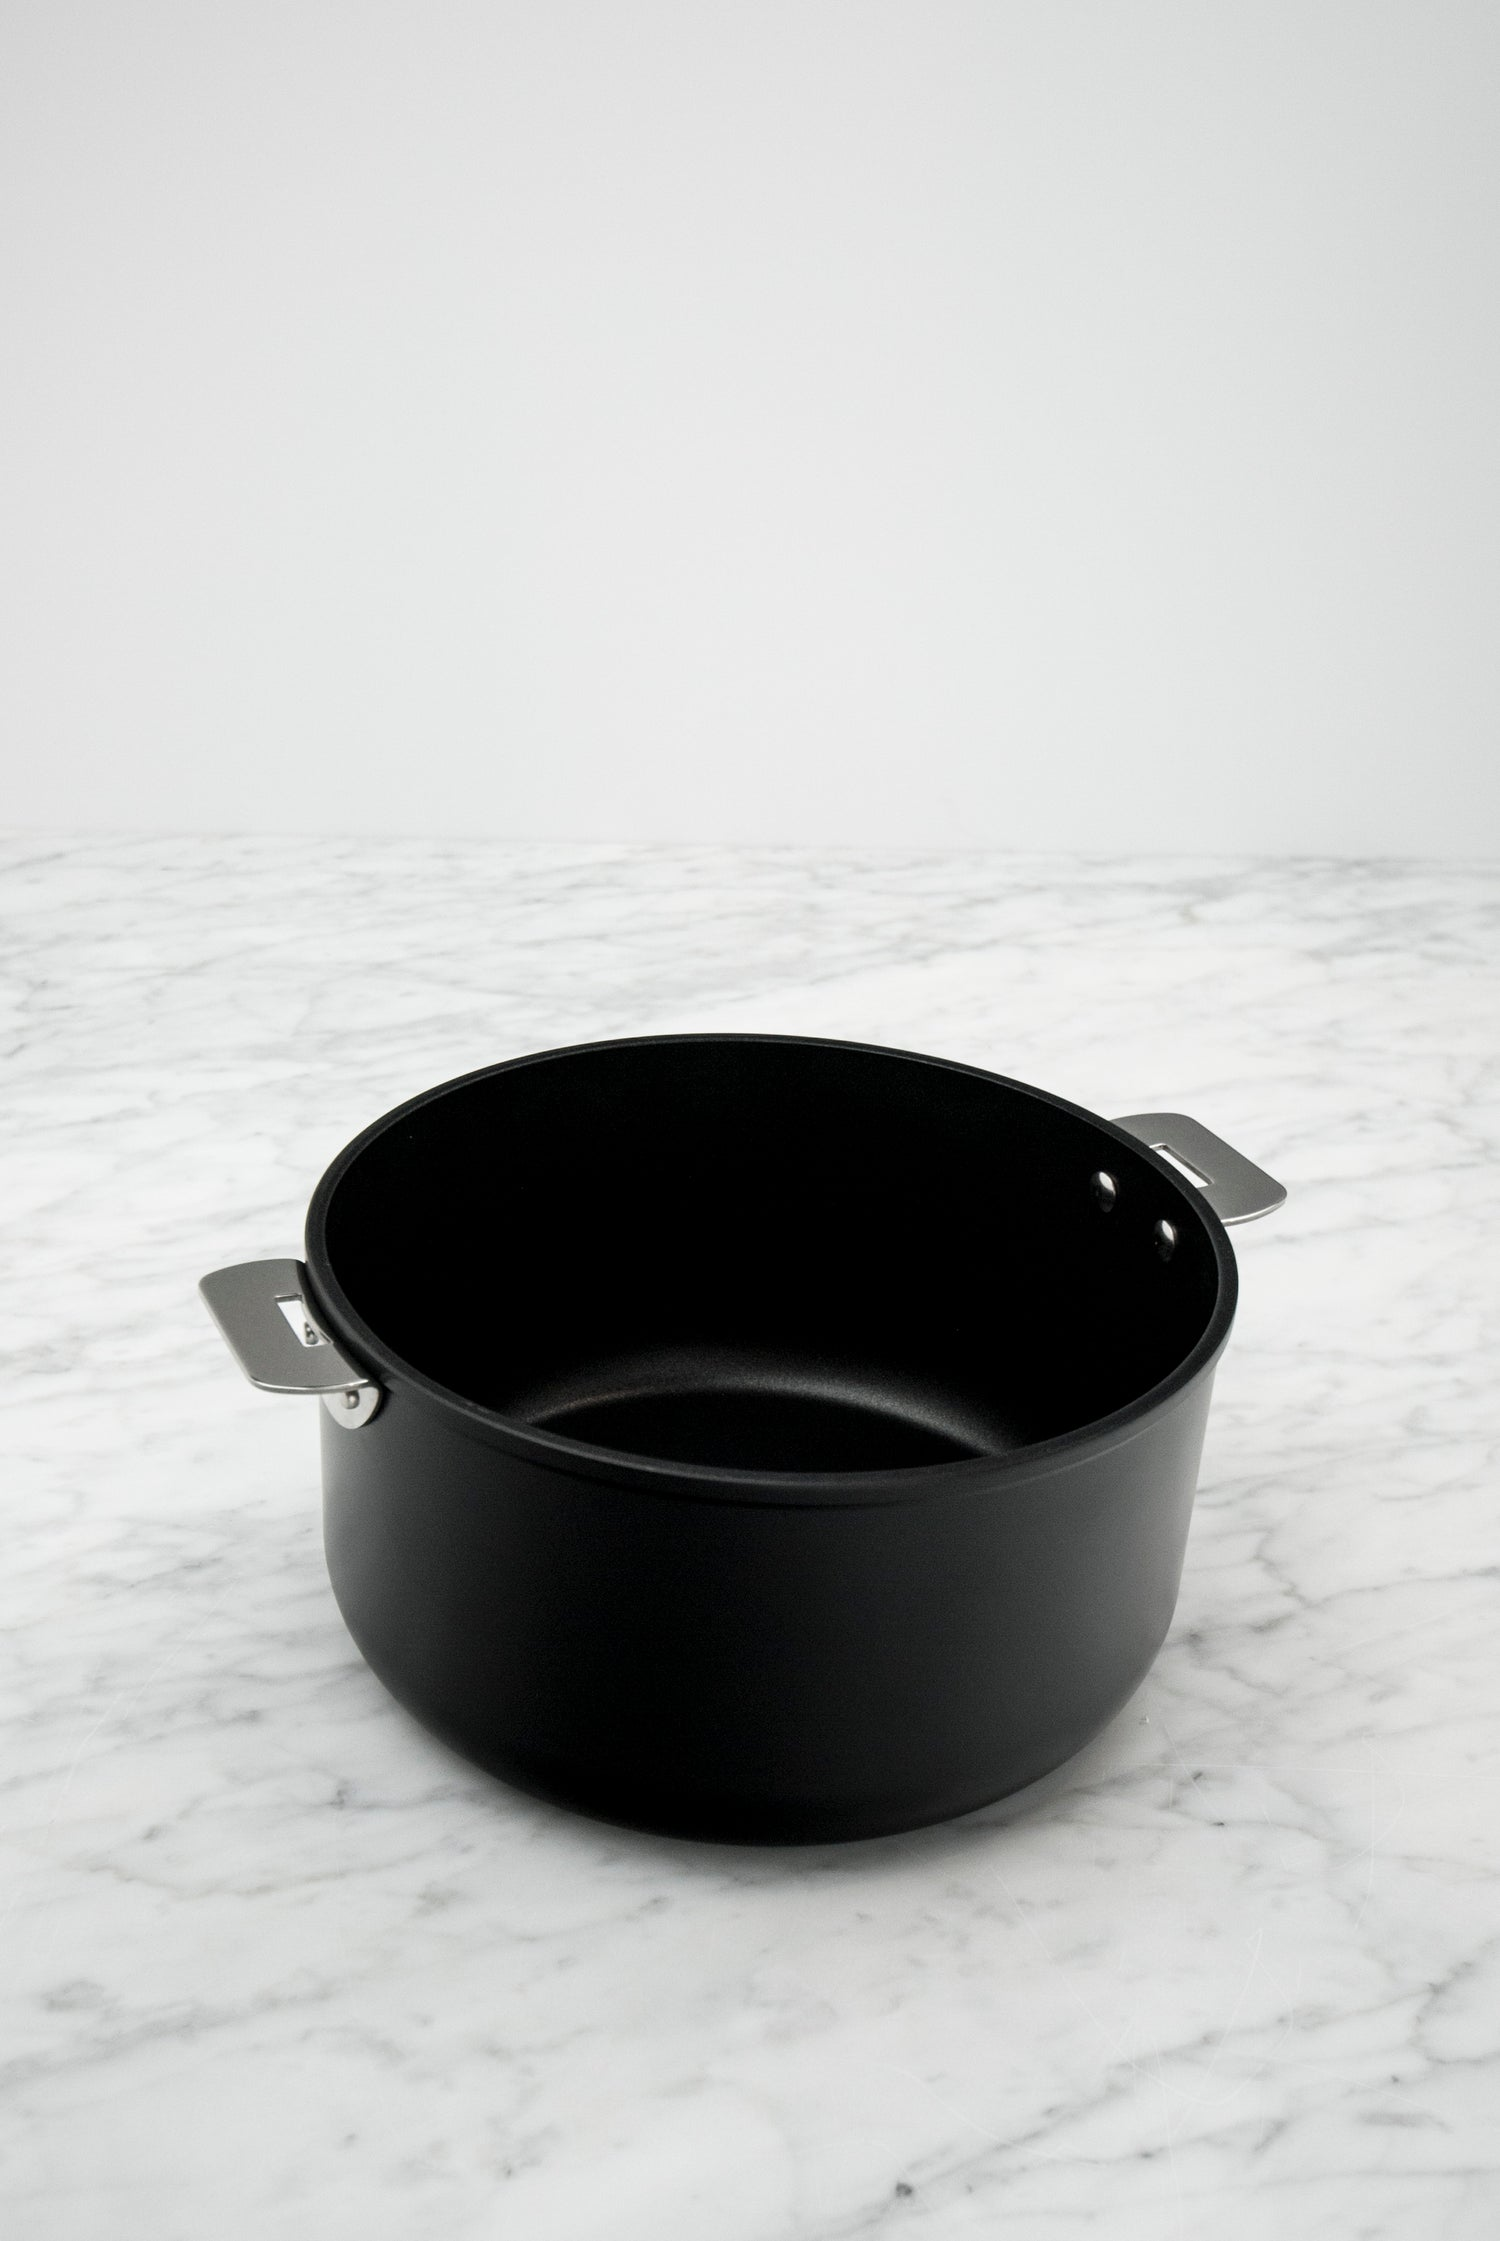 Image of Olla